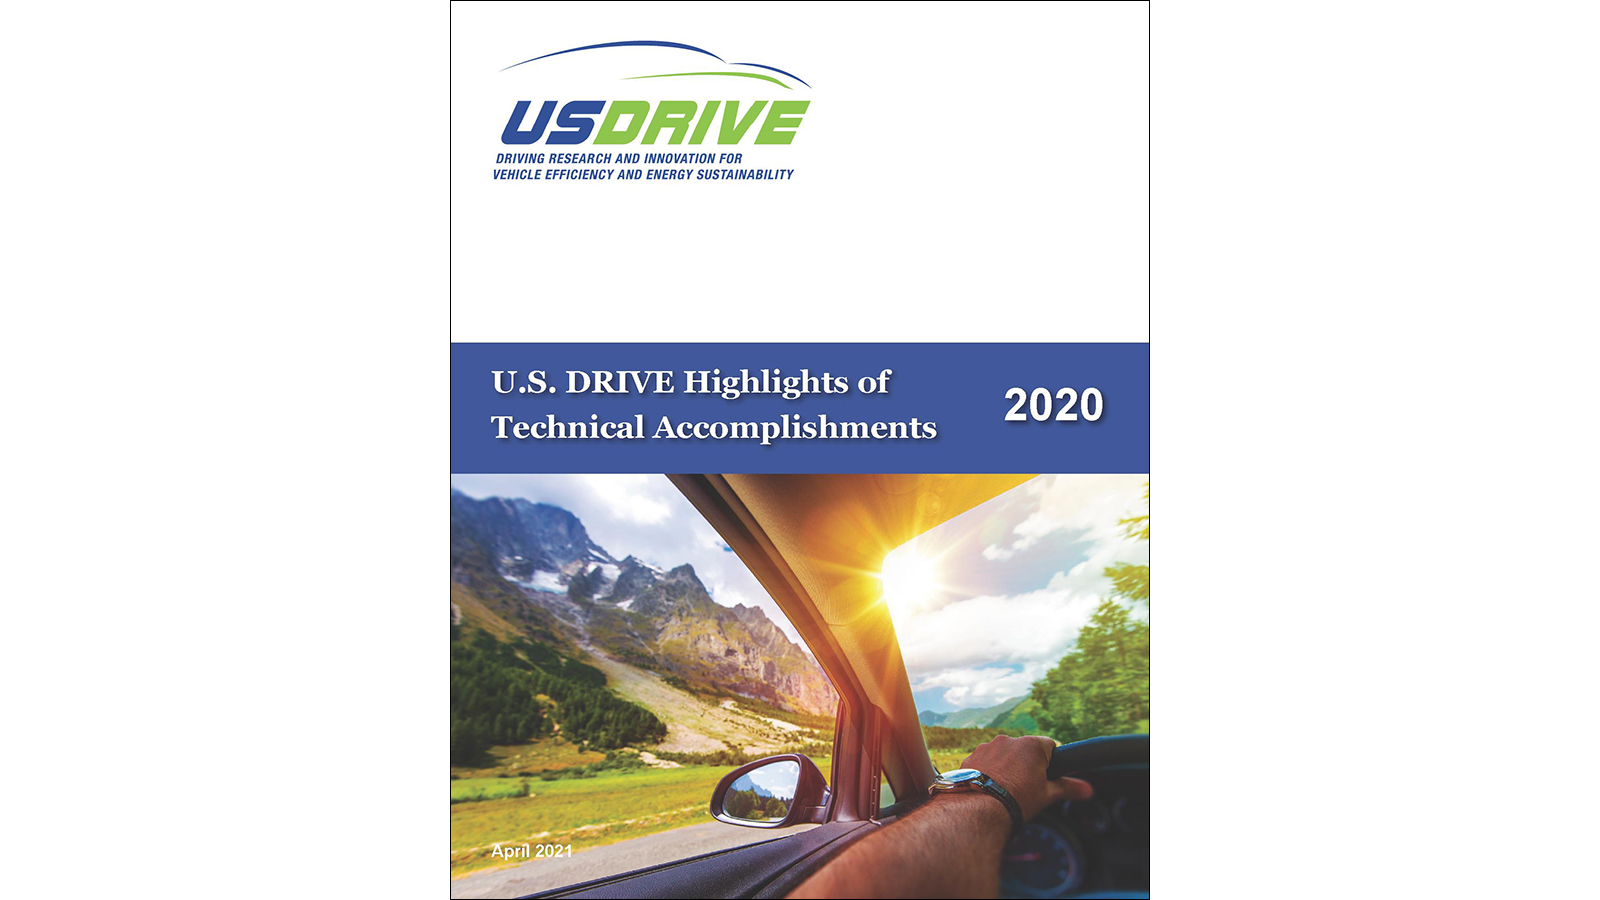 USDRIVE 2020 cover